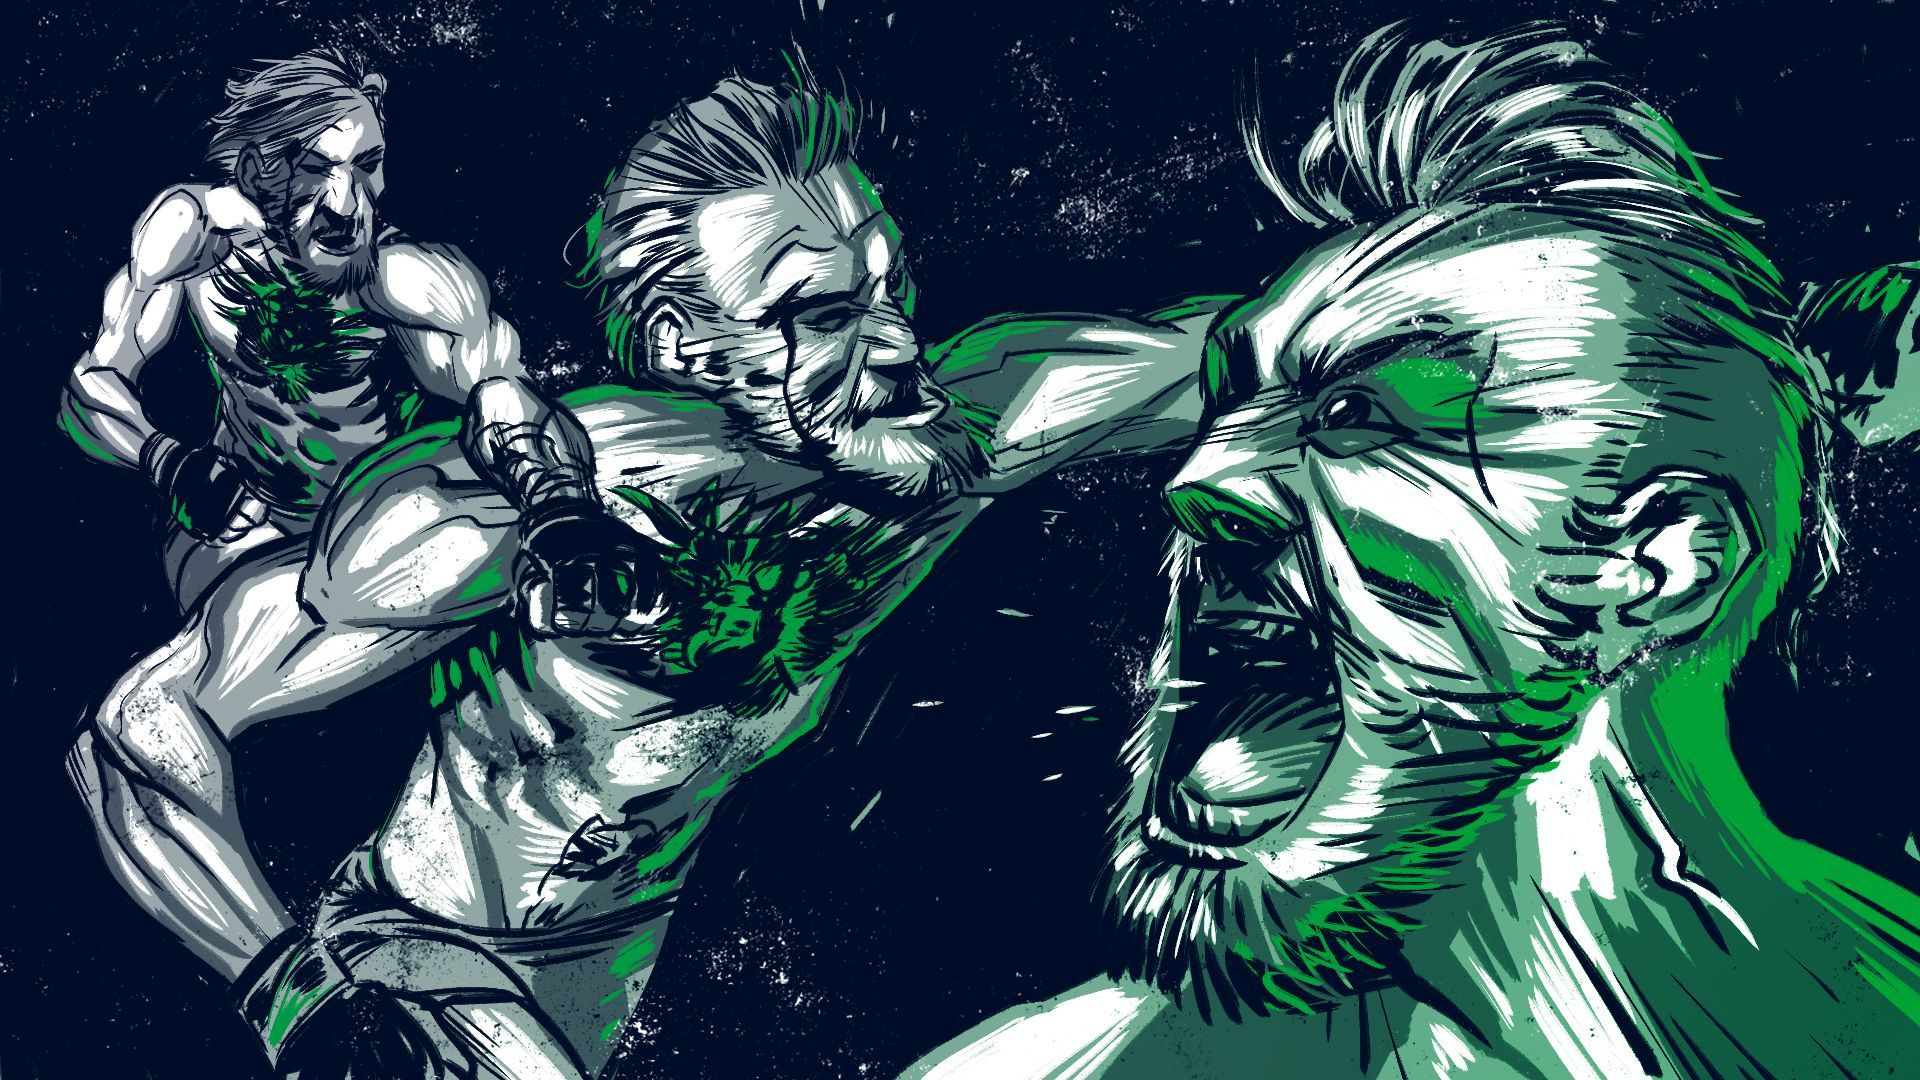 fan-made art of Conor McGregor : if you love #MMA, you'll love the #UFC & #MixedMartialArts inspired fashion at CageCult: http://cagecult.com/mma